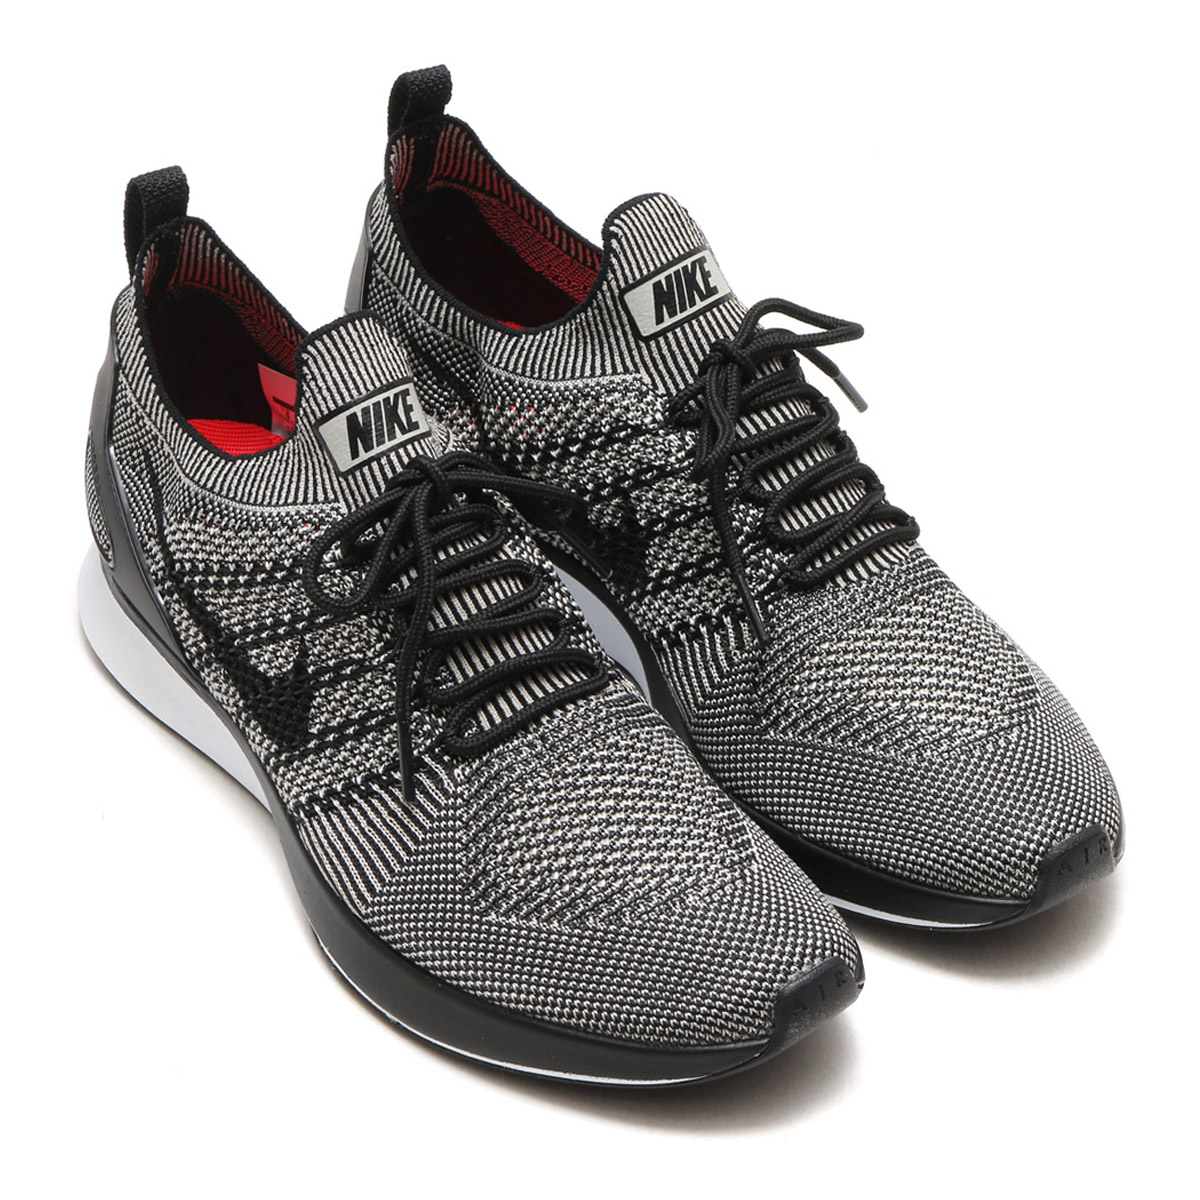 5de68b15233 NIKE AIR ZOOM MARIAH FLYKNIT RACER (Nike air zoom Maria fly knit racer) (PALE  GREY BLACK-SOLAR RED-WHITE) 17FA-S